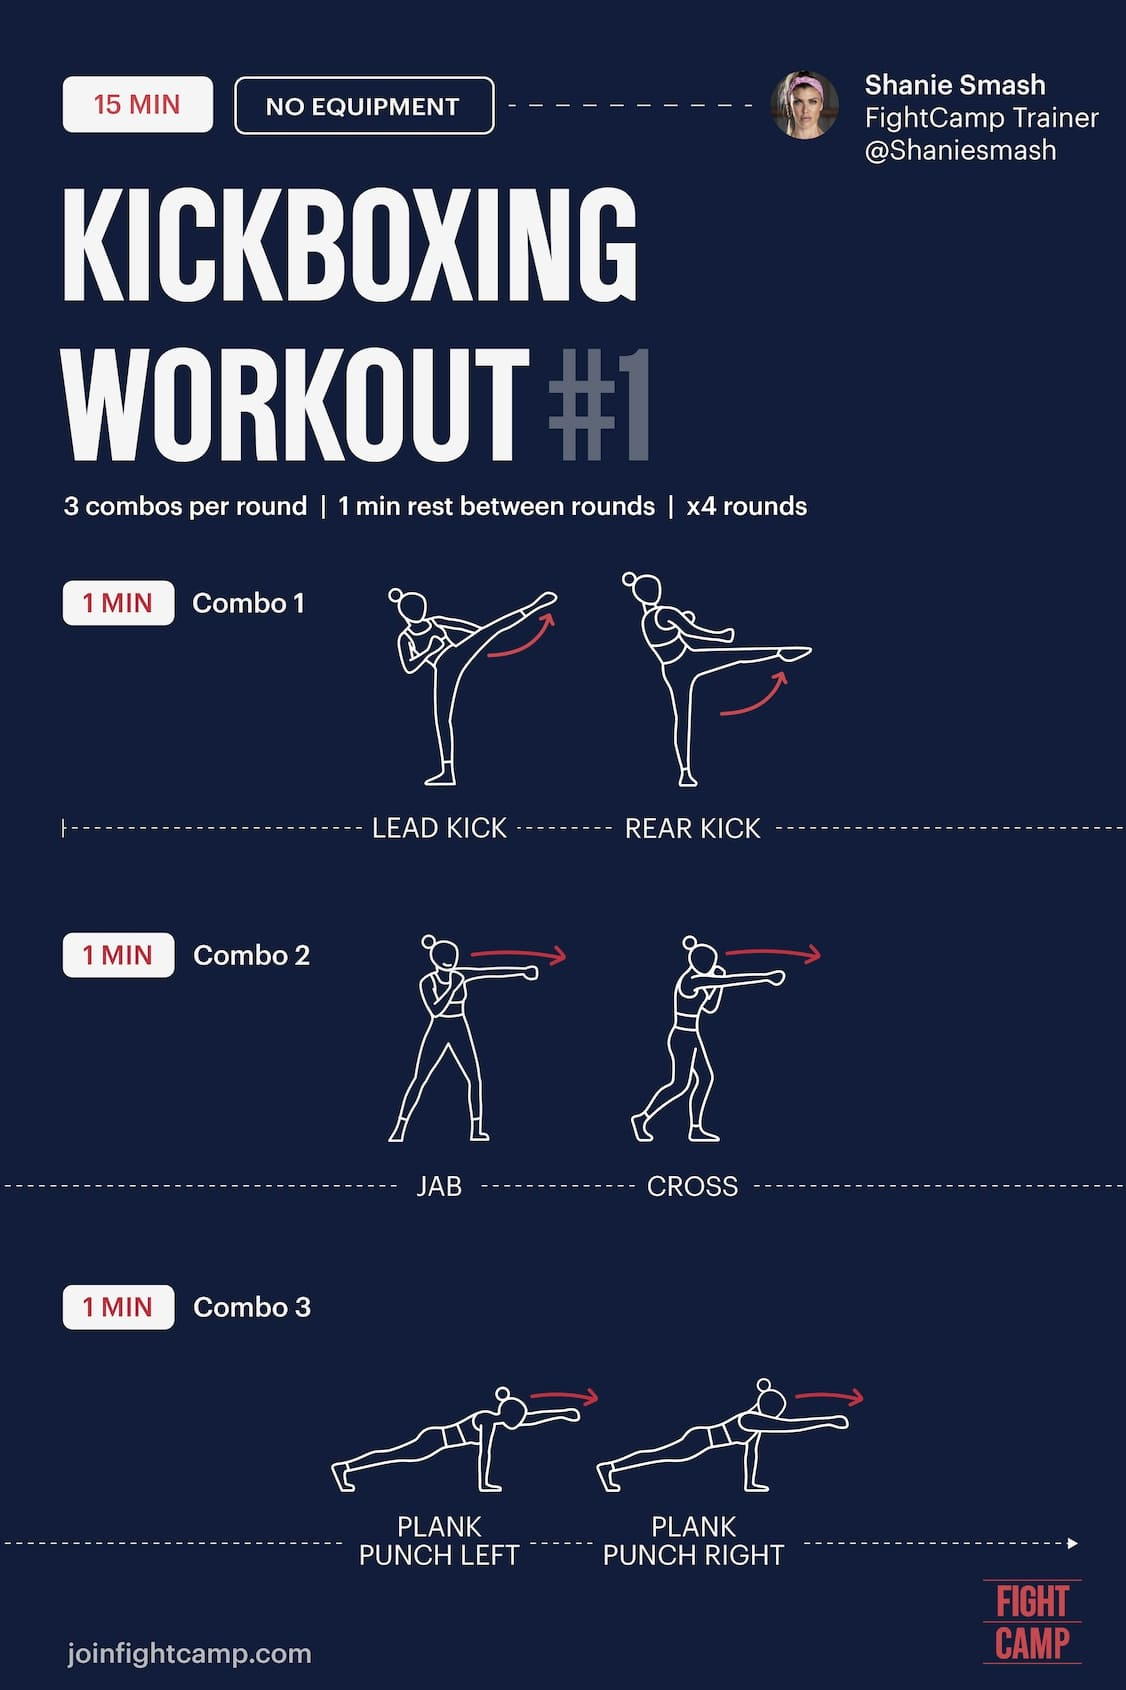 FREE 15 Minute Kickboxing Workout Infographic